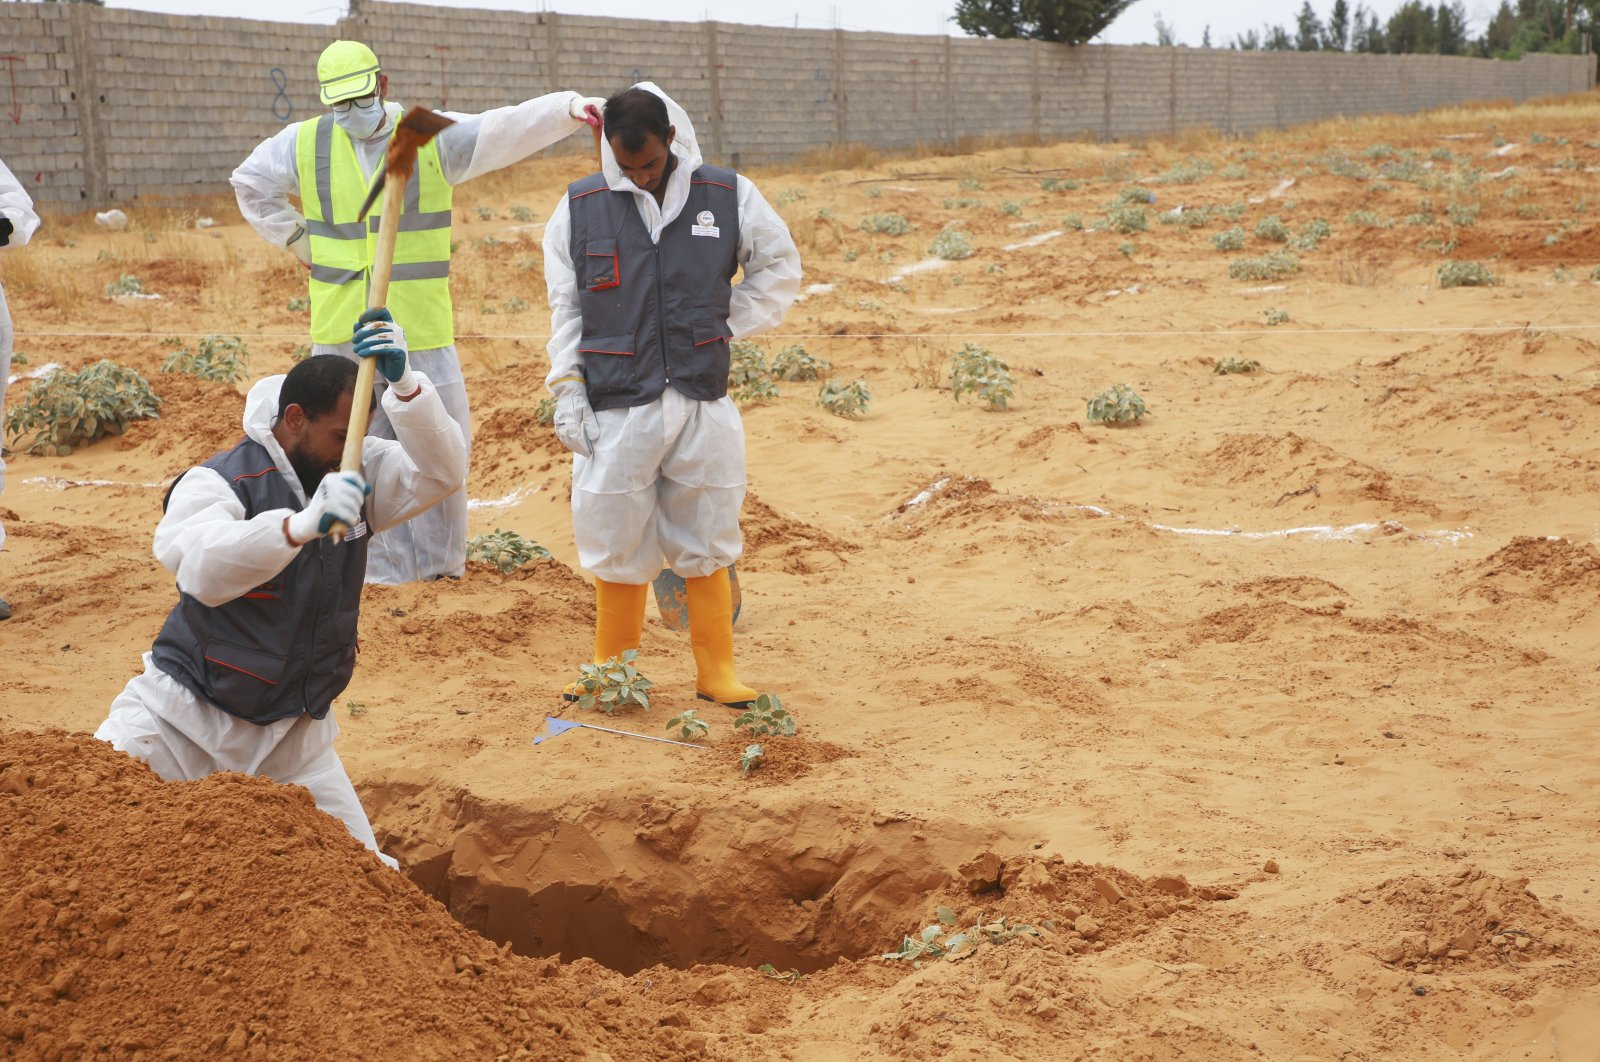 Libyan Ministry of justice employees dig out at a site of a suspected mass grave in the town of Tarhuna, Libya, Tuesday, June 23, 2020. (AP Photo)